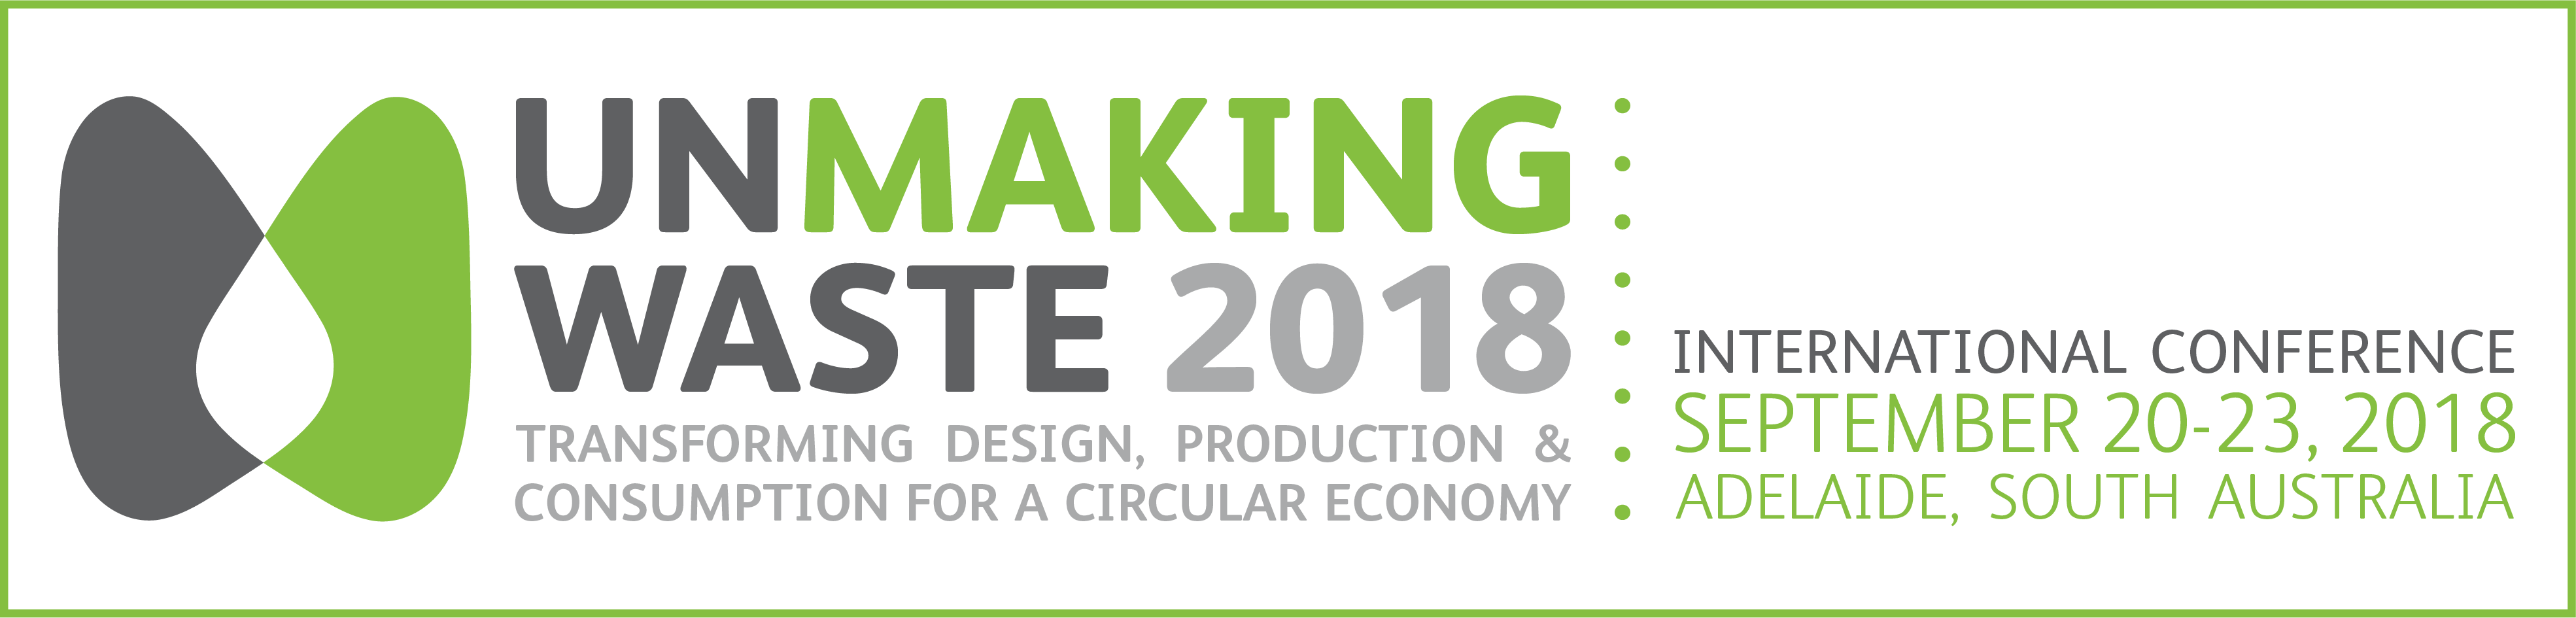 Unmaking Waste Conference banner